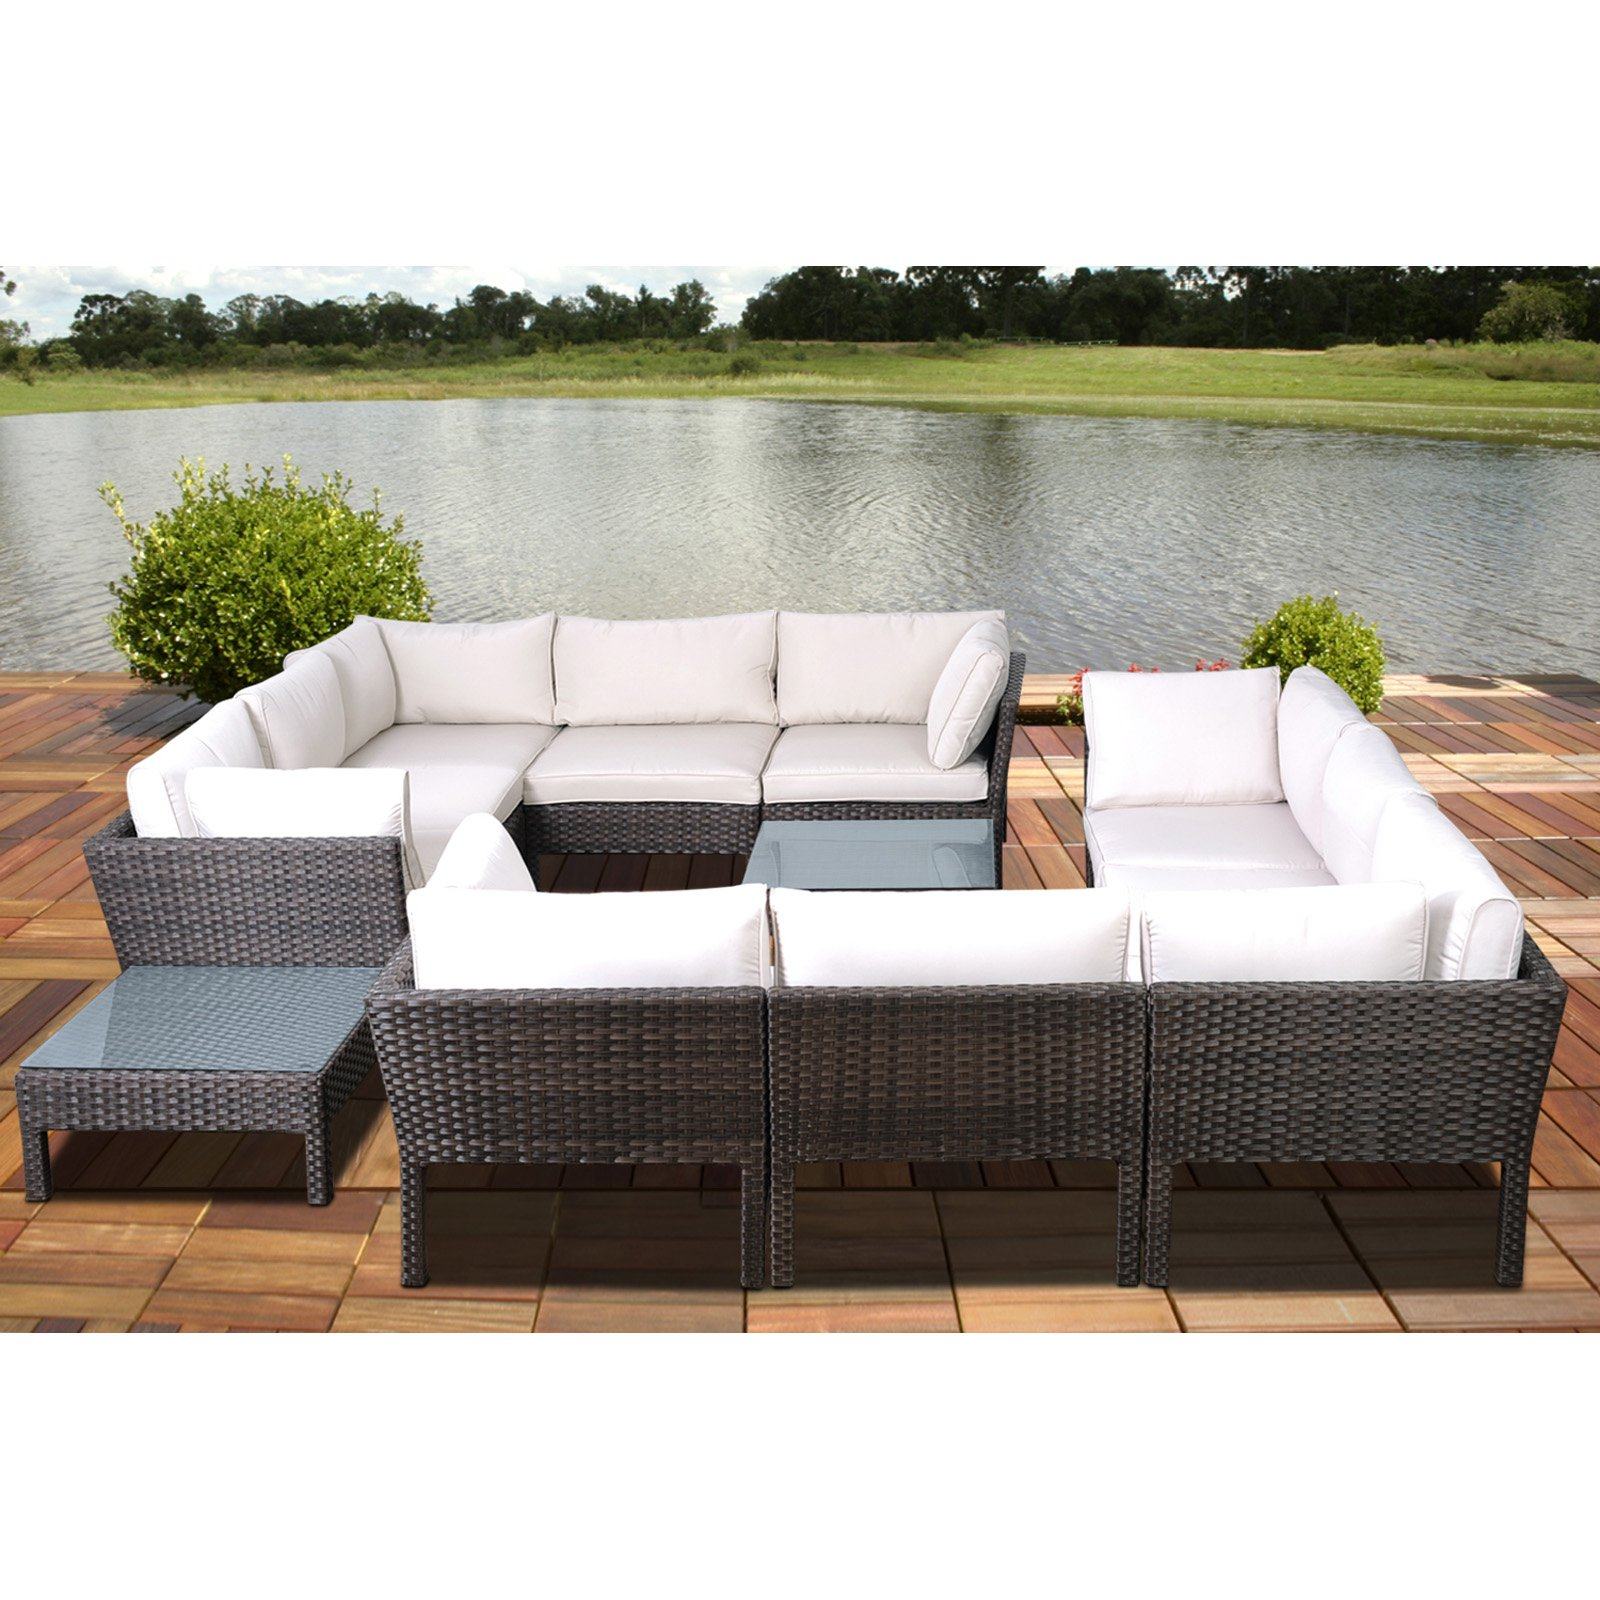 Metz 5-Piece Grey Wicker Seating Set with Off-White Cushions